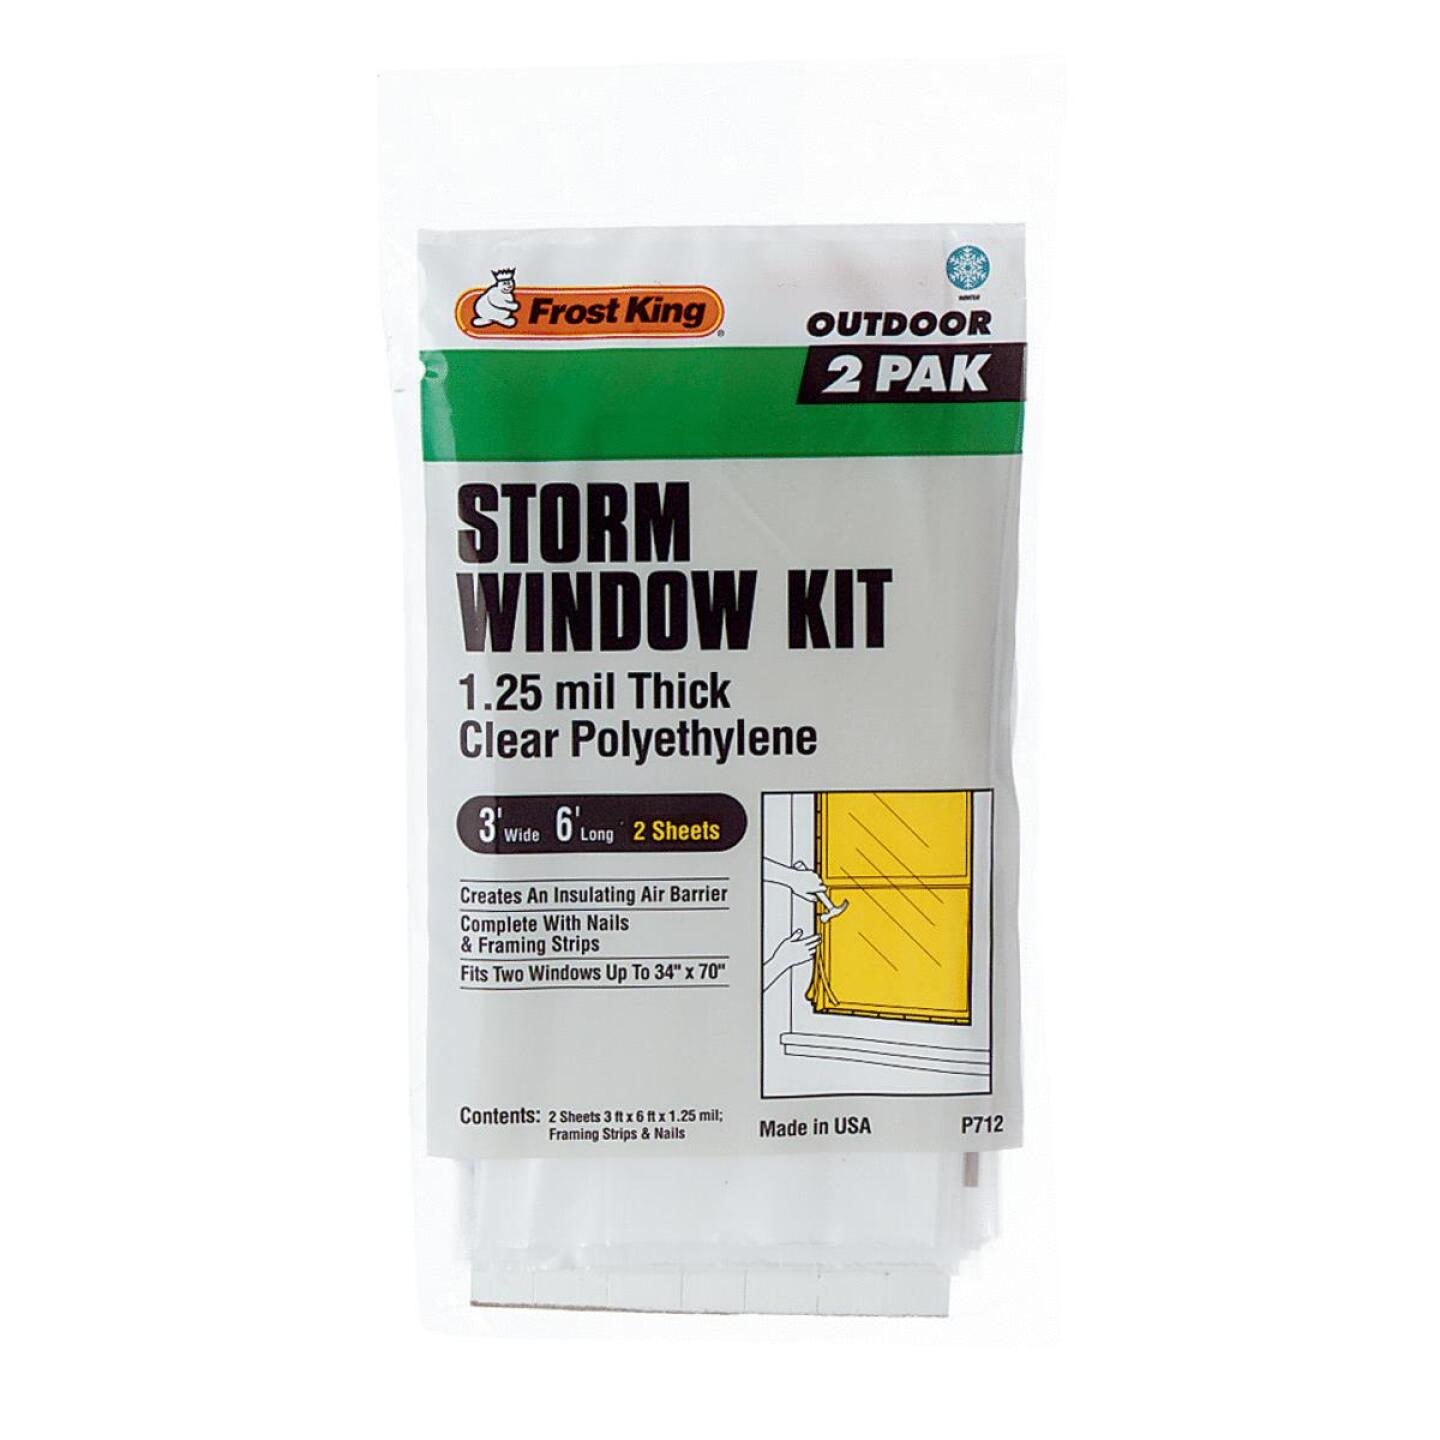 Frost King Outdoor 3 Ft. x 6 Ft. x 1. 25 Mil. Thick Storm Window Kit (2-Pack) Image 1